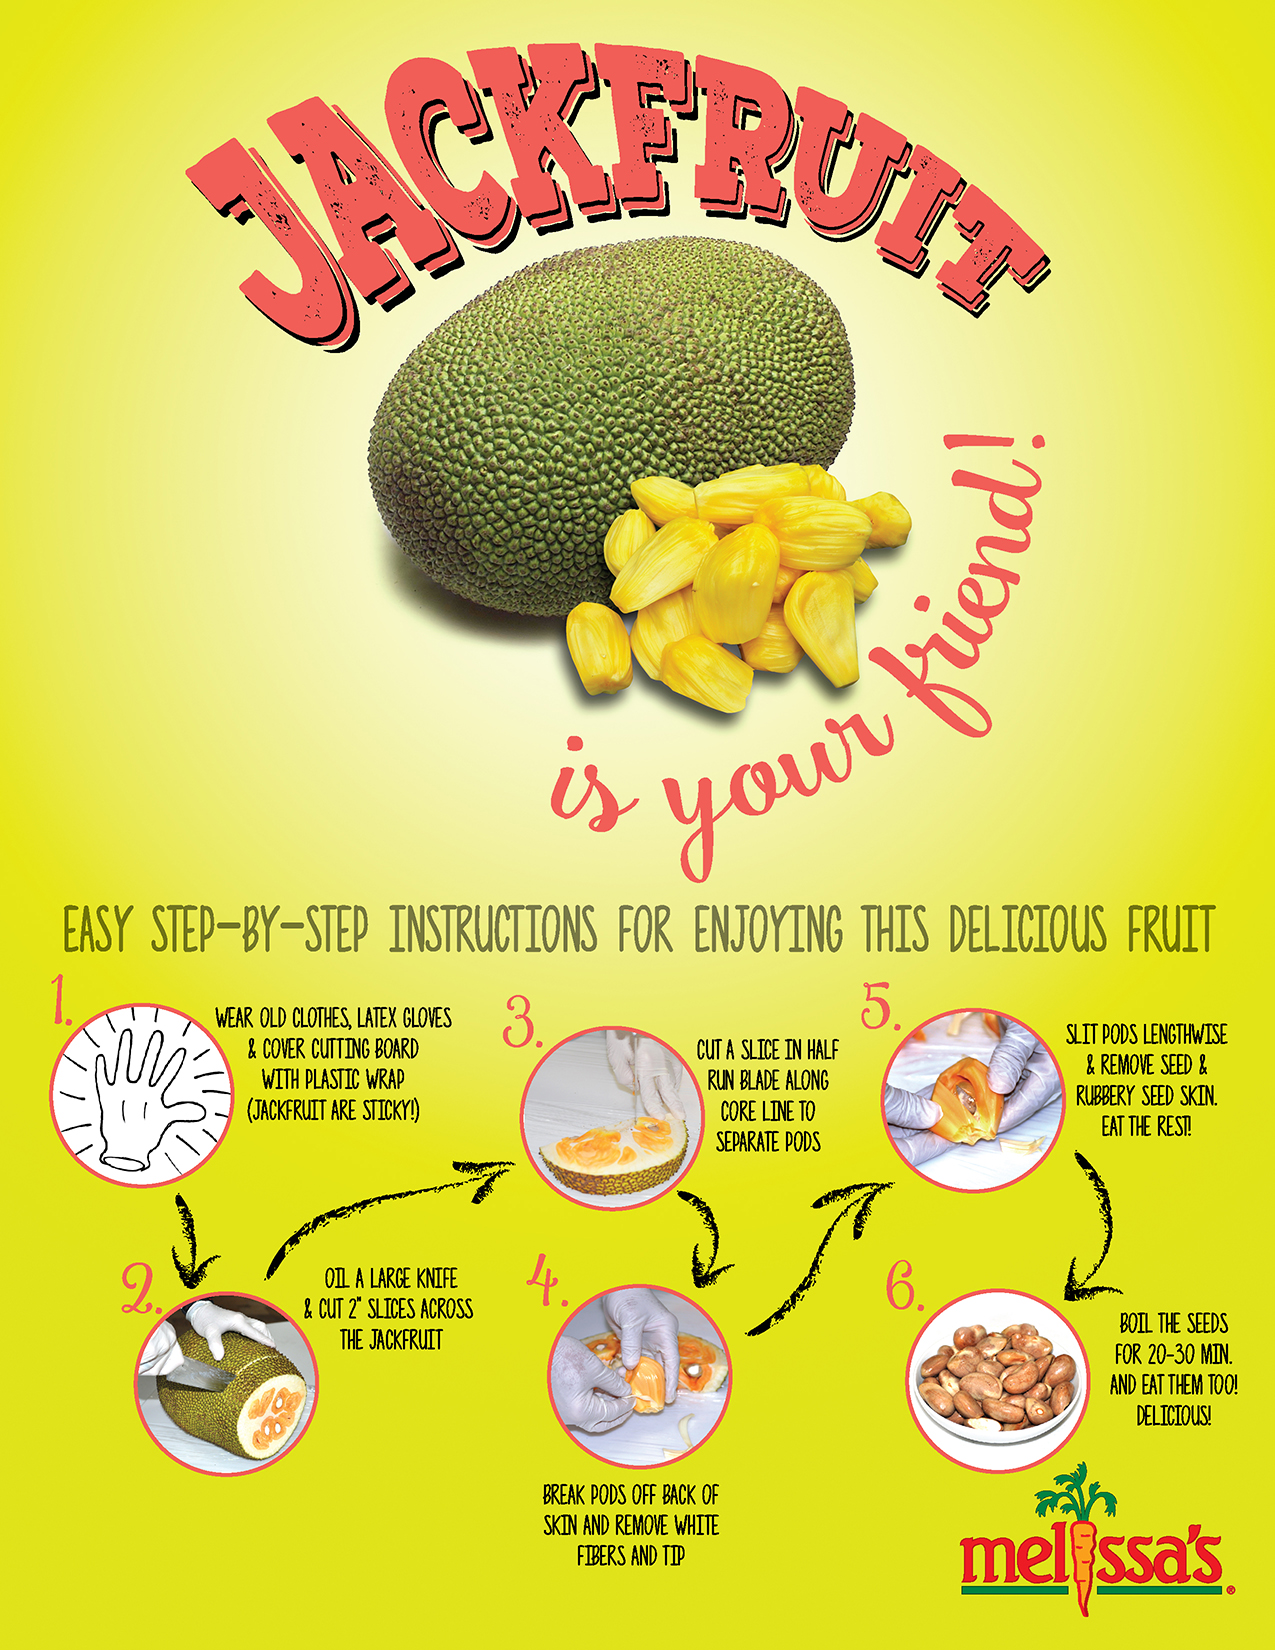 How To Tell When A Jackfruit Is Ripe And How To Cut It: As The